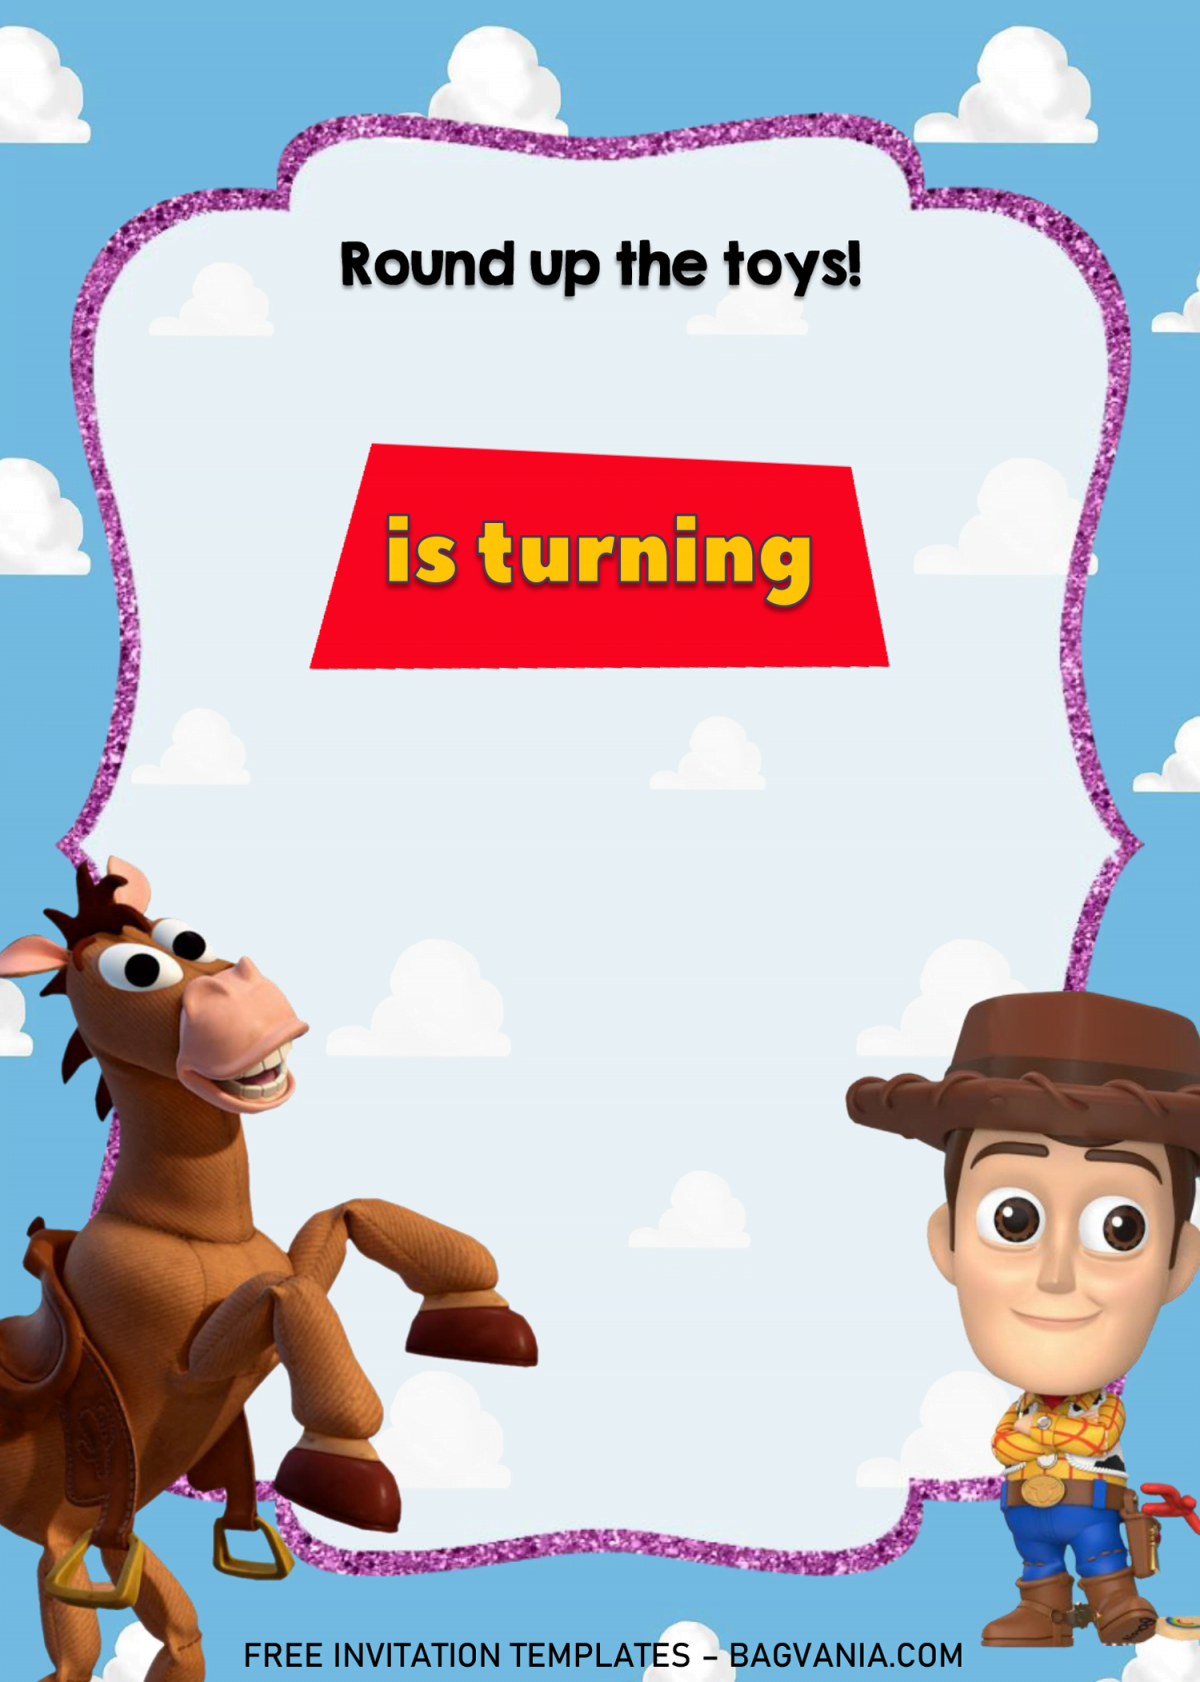 Toy Story Invitation Templates - Editable With MS Word and has transparent text frame